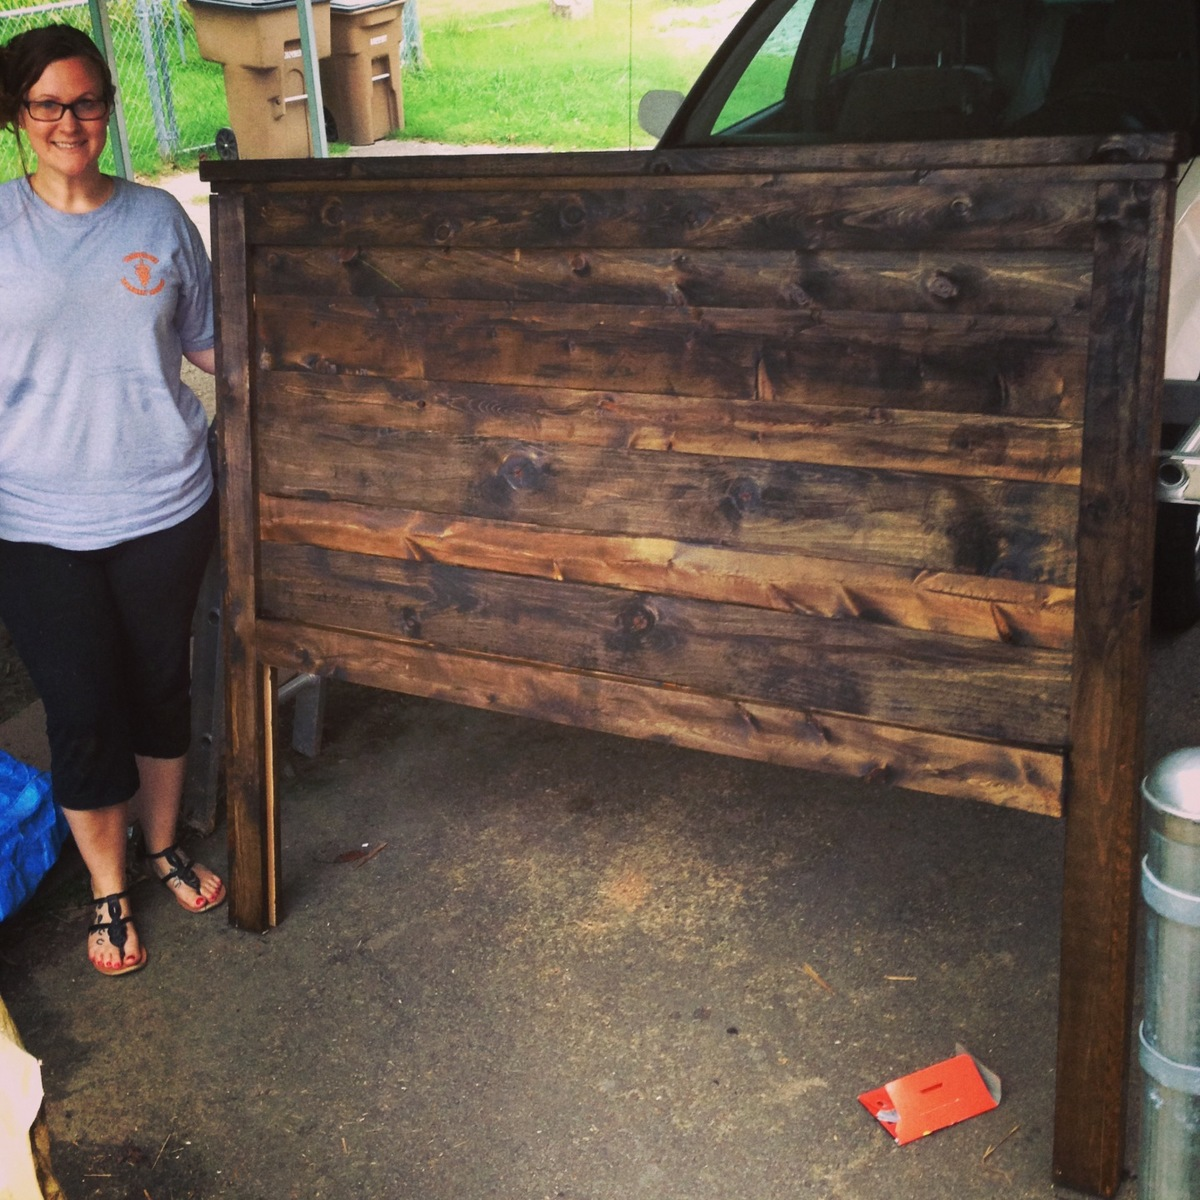 Reclaimed Wood Furniture For Sale WB Designs - Reclaimed Wood Furniture For  Sale WB Designs - Reclaimed Wood Headboard For Sale Renovatix